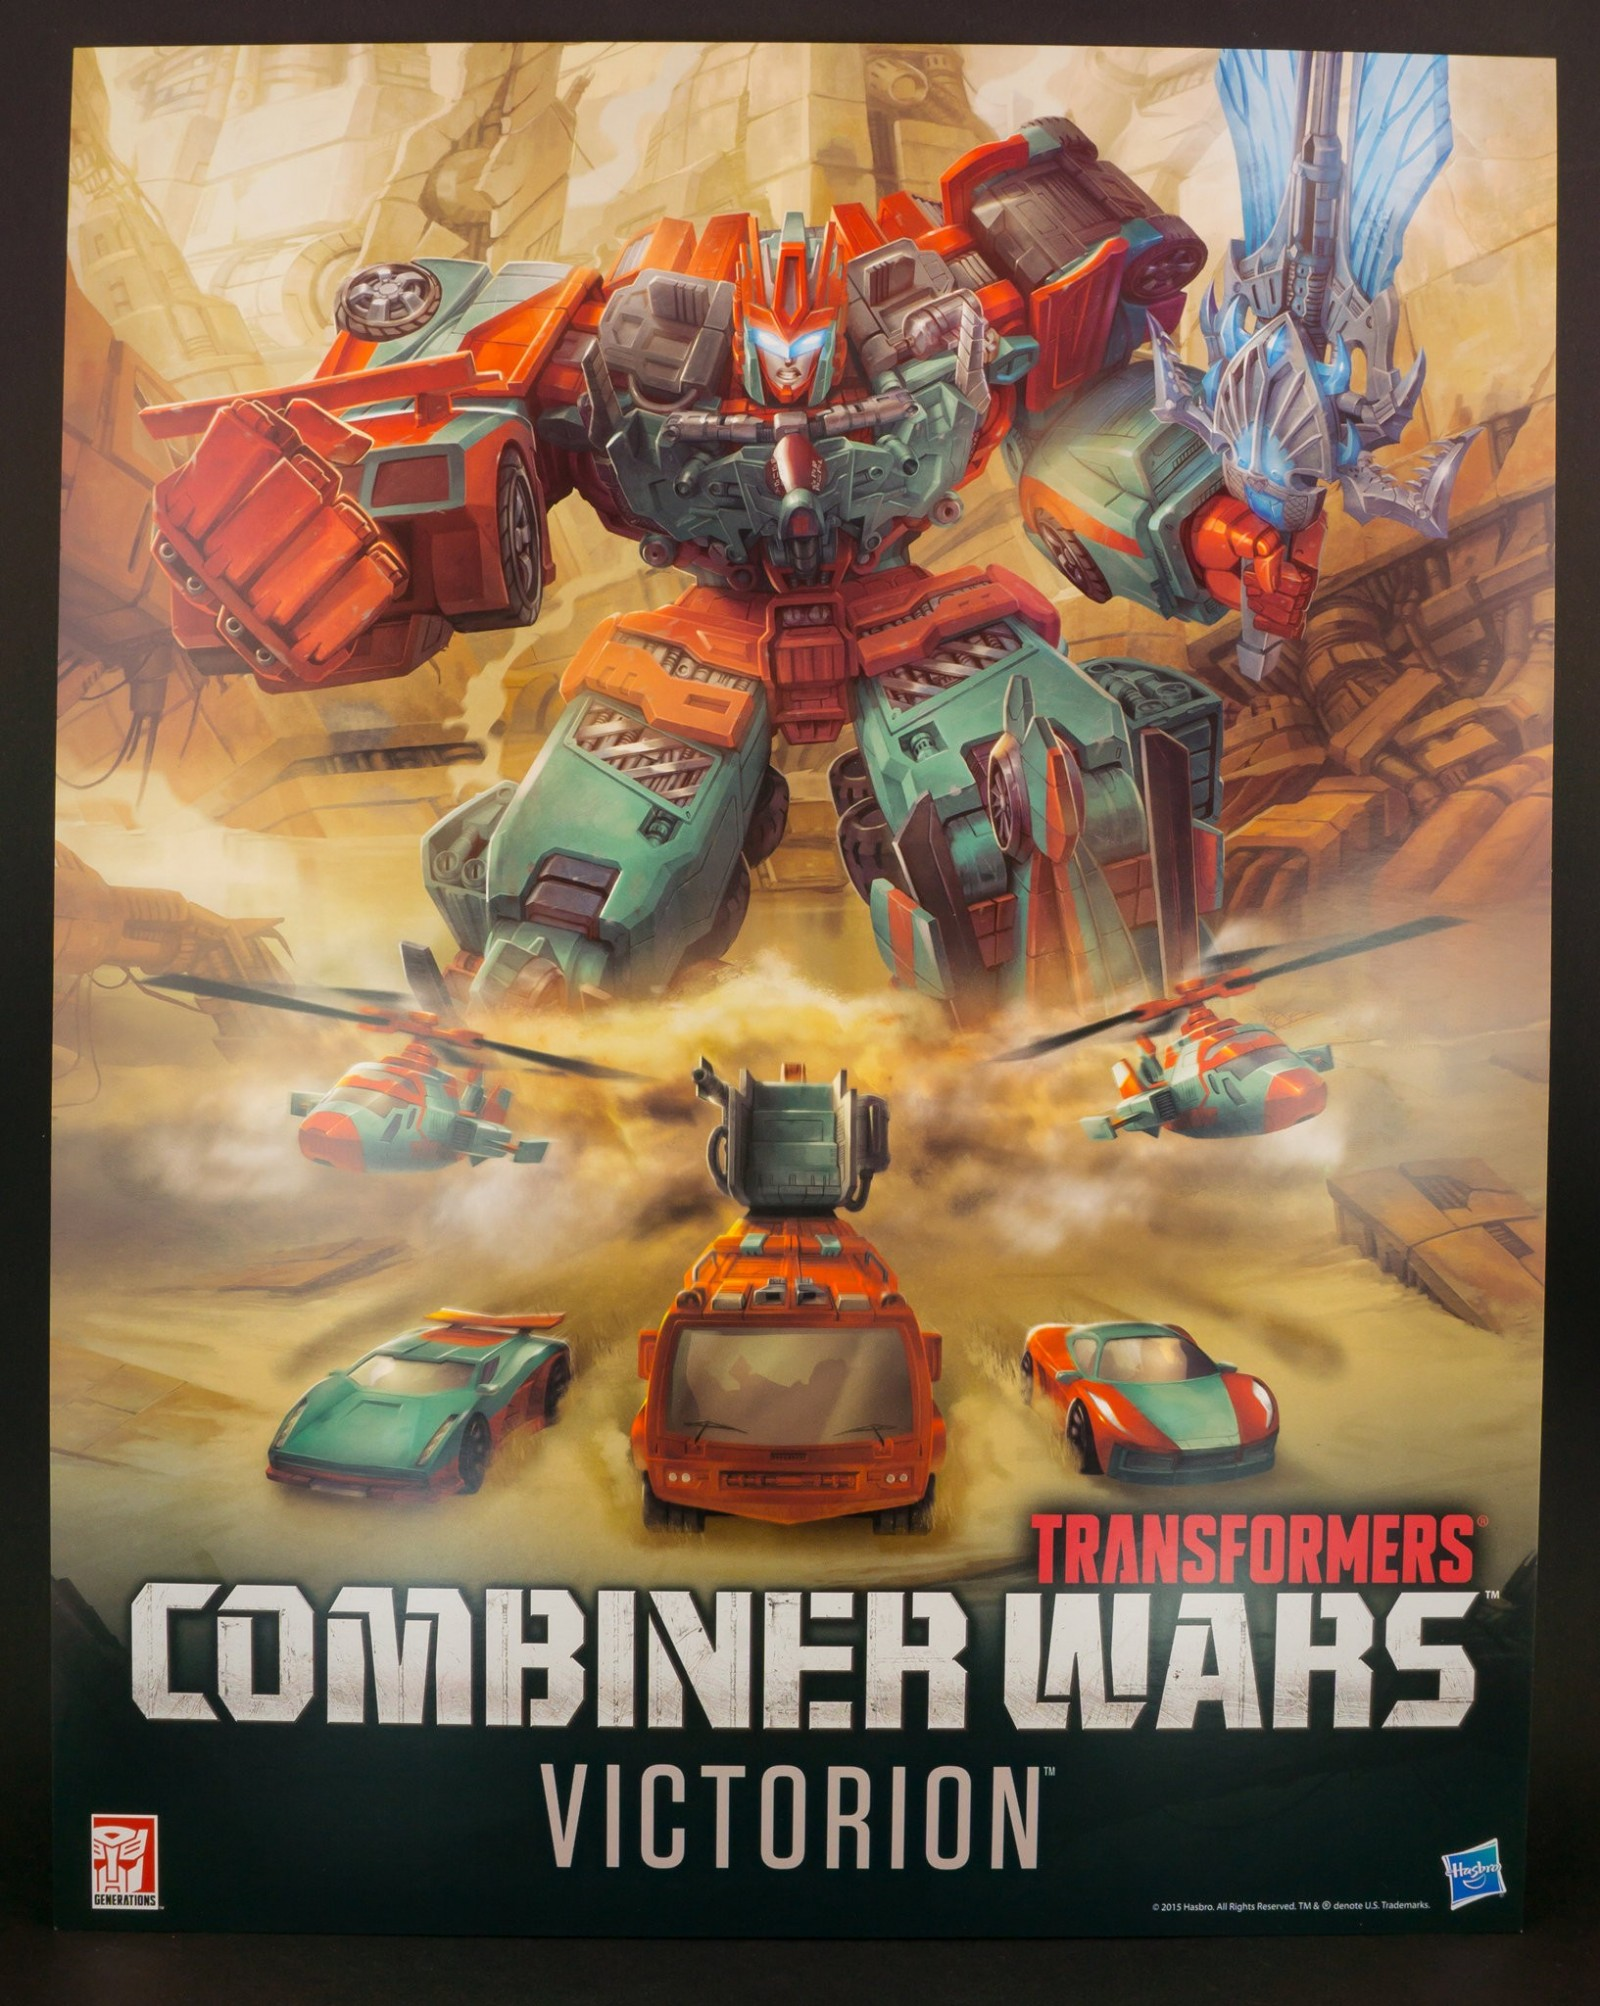 Transformers News: Transformers Combiner Wars Concept Art of Victorion by Marcelo Matere